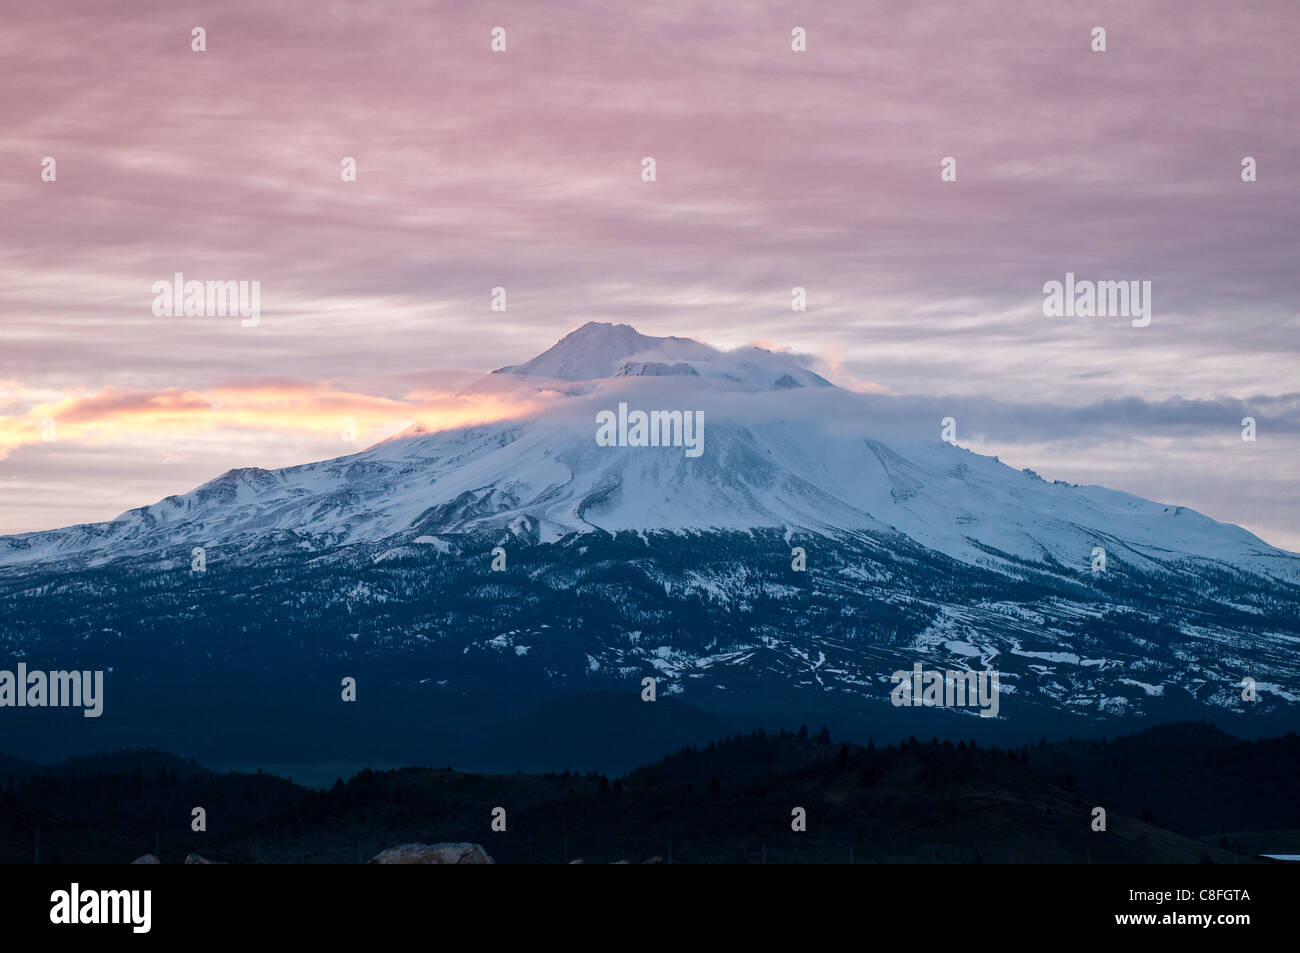 Dawn at Mount Shasta, California, United States of America - Stock Image